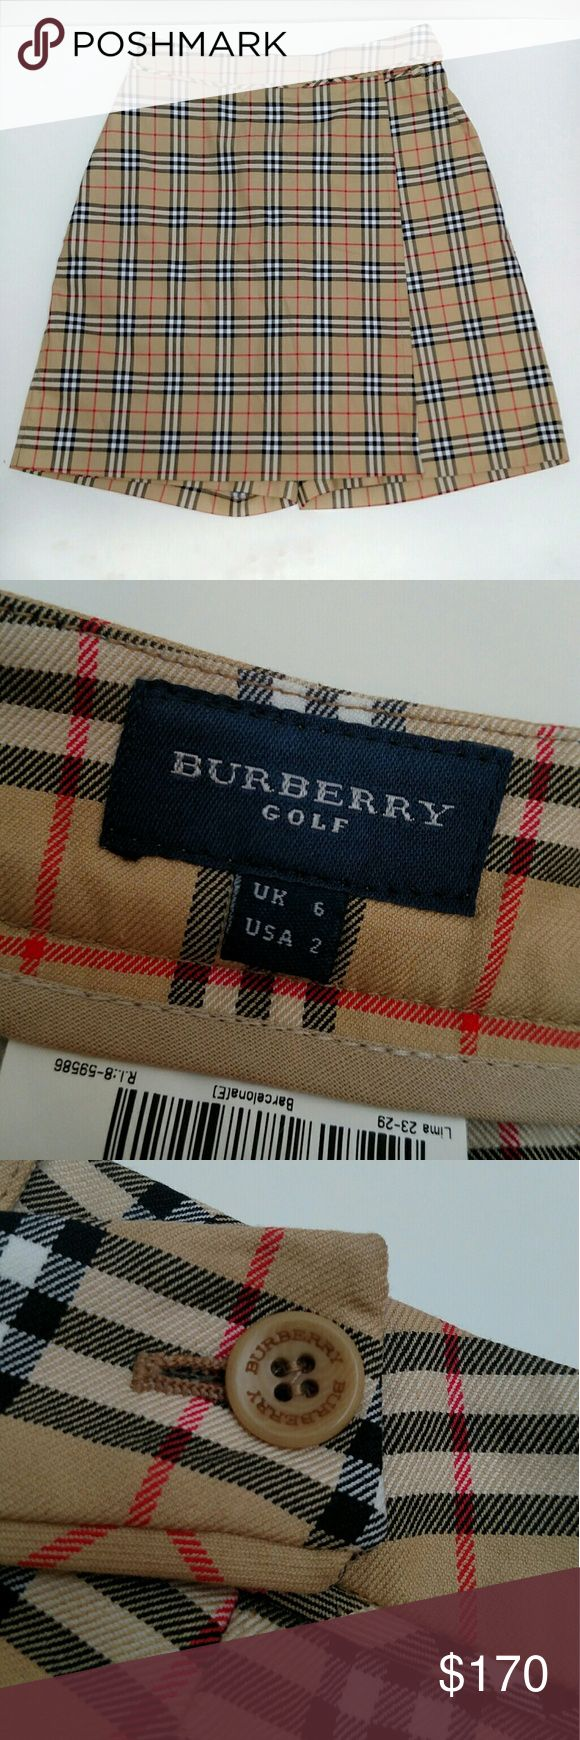 Authentic Burberry Golf Skort This Burberry golf skort features the classic plaid print throughout. It has a pocket on the back, an exposed button closure on the side of the skirt, and a hidden zip closure for the shorts. They are in amazing condition!! Burberry Skirts